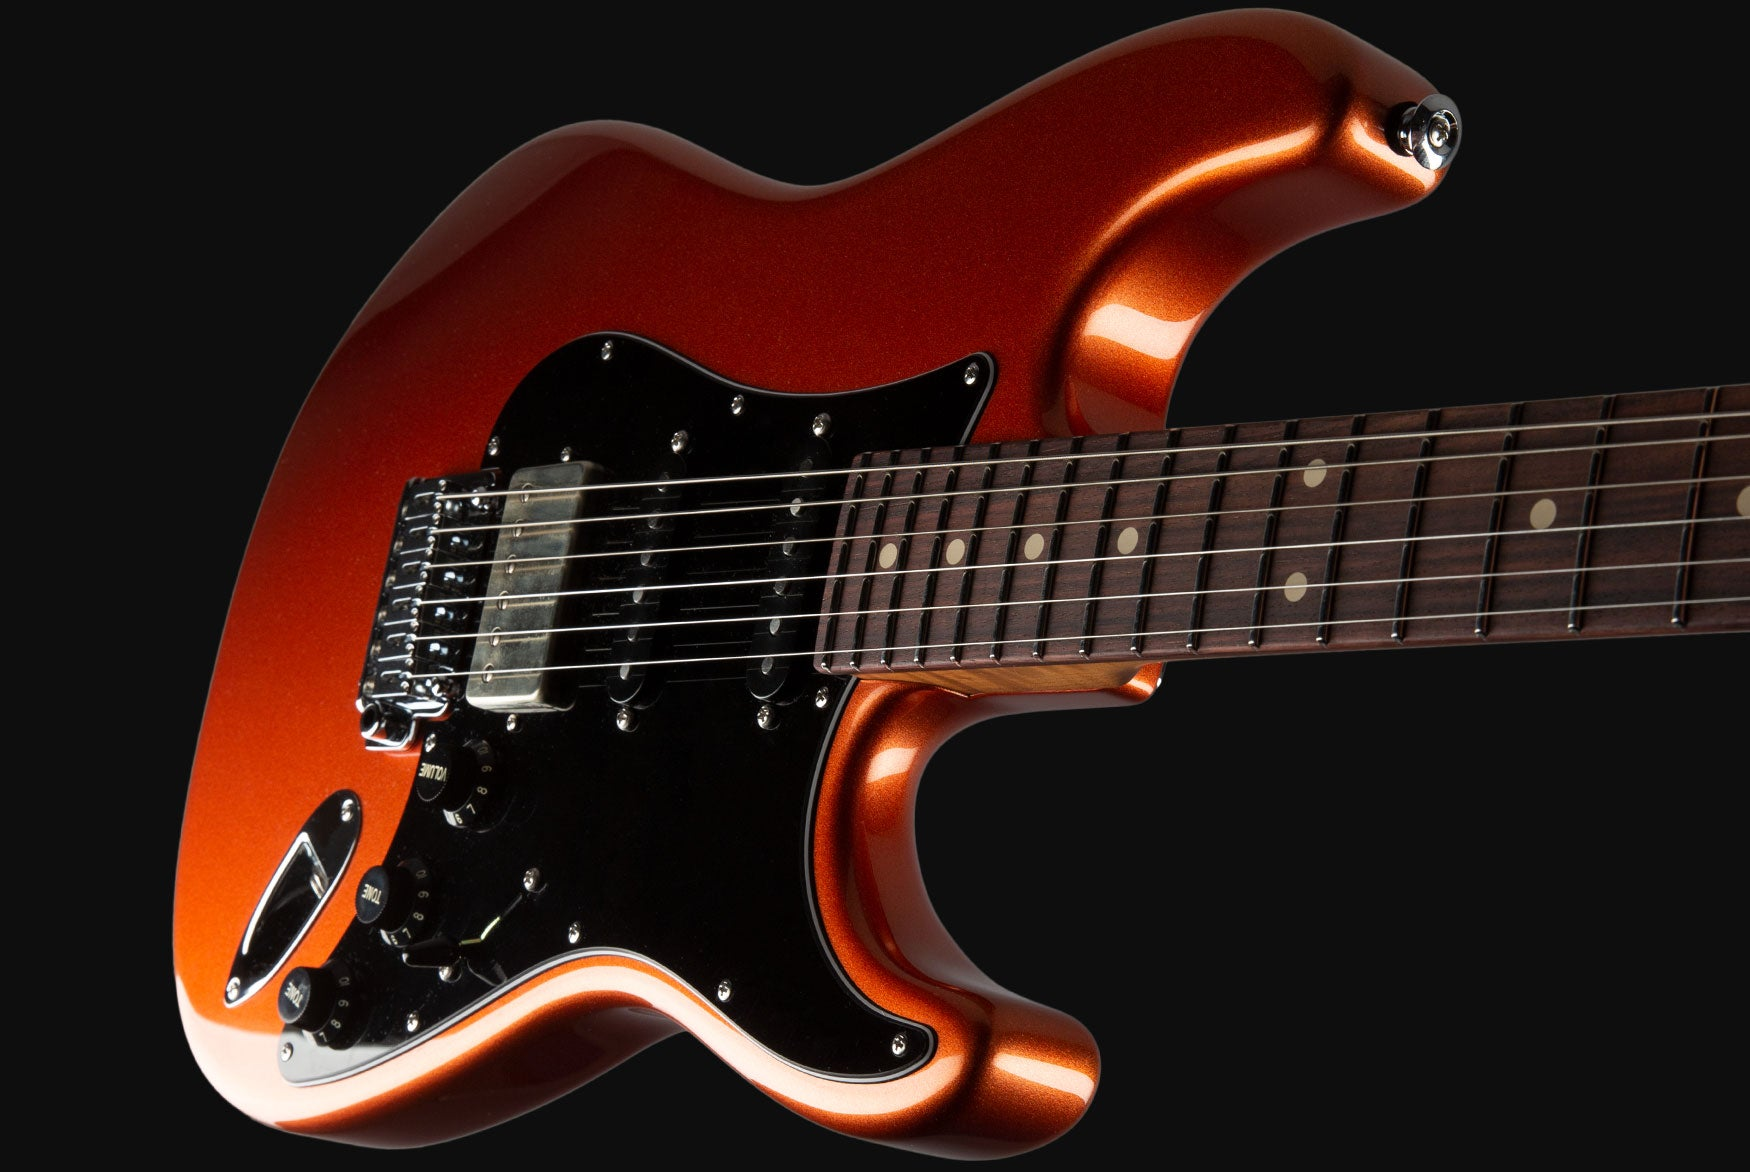 SUHR CLASSIC S METALLIC 2020 Limited Edition Copper Firemist